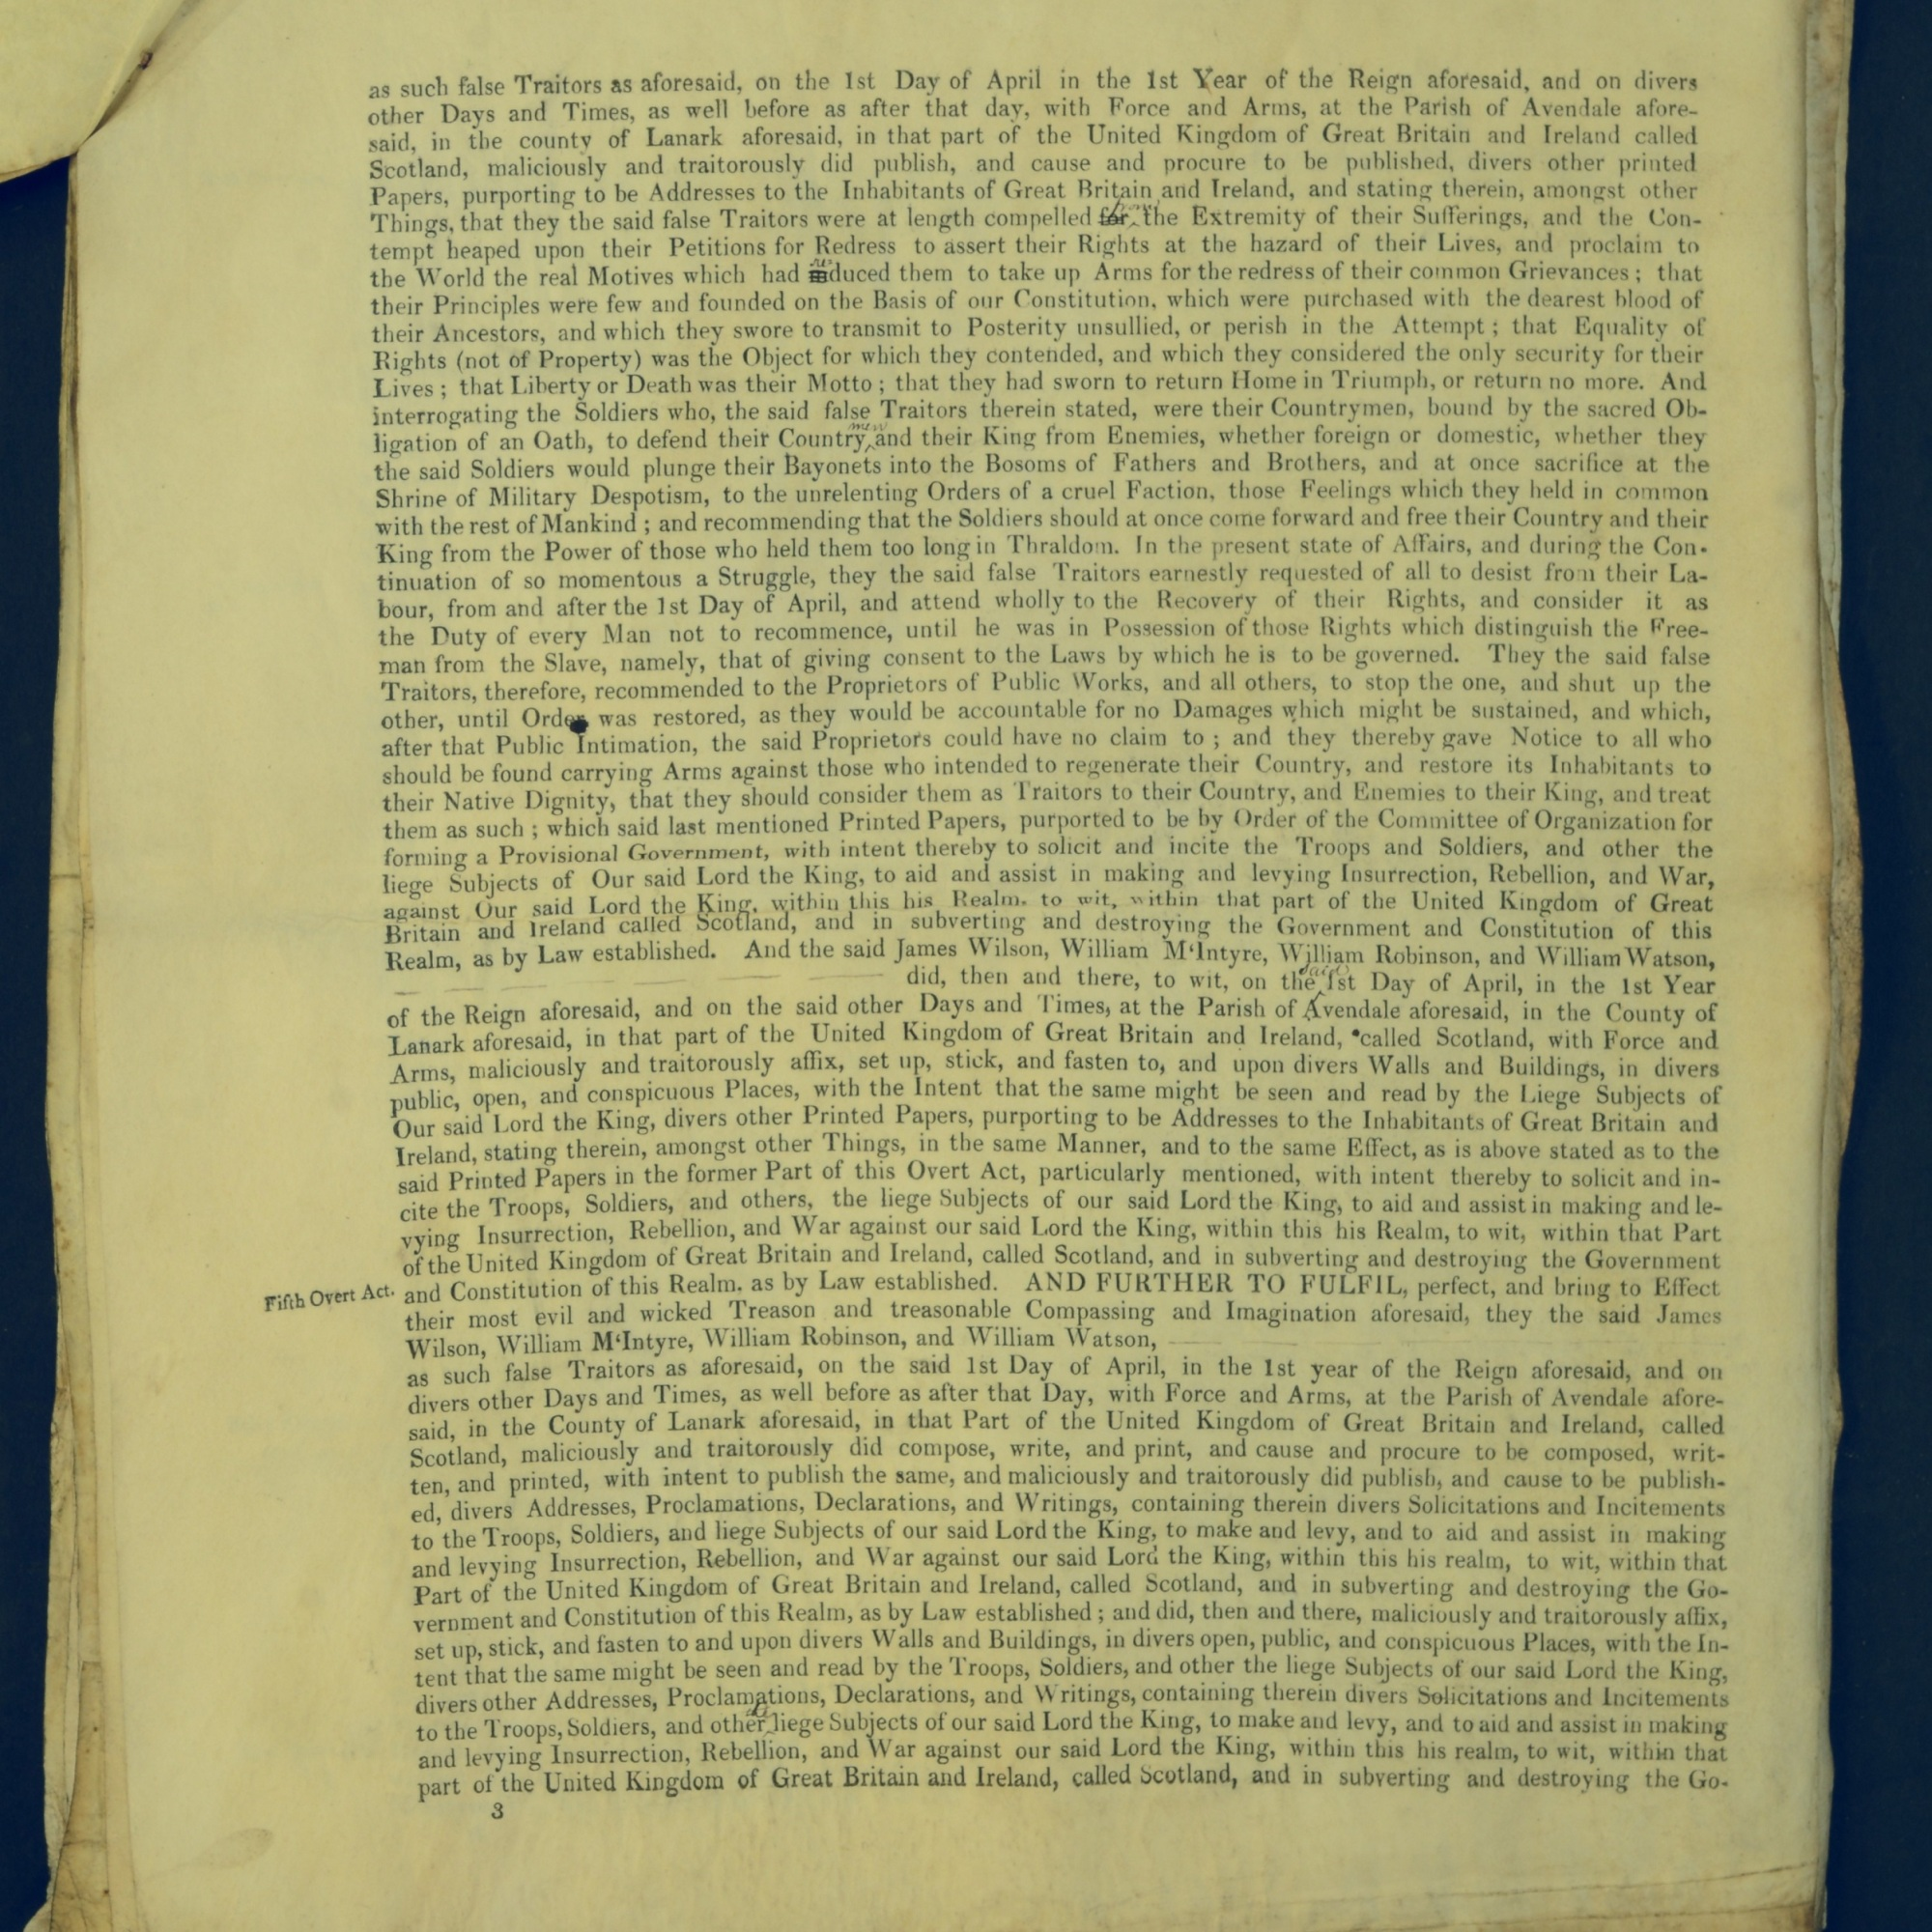 Treason Trials for the County of Lanark, the Strathaven Case. True bills found against four men, James Wilson, William McIntyre, William Robinson and William Watson. National Records of Scotland, Crown copyright, JC21/3/4 p3